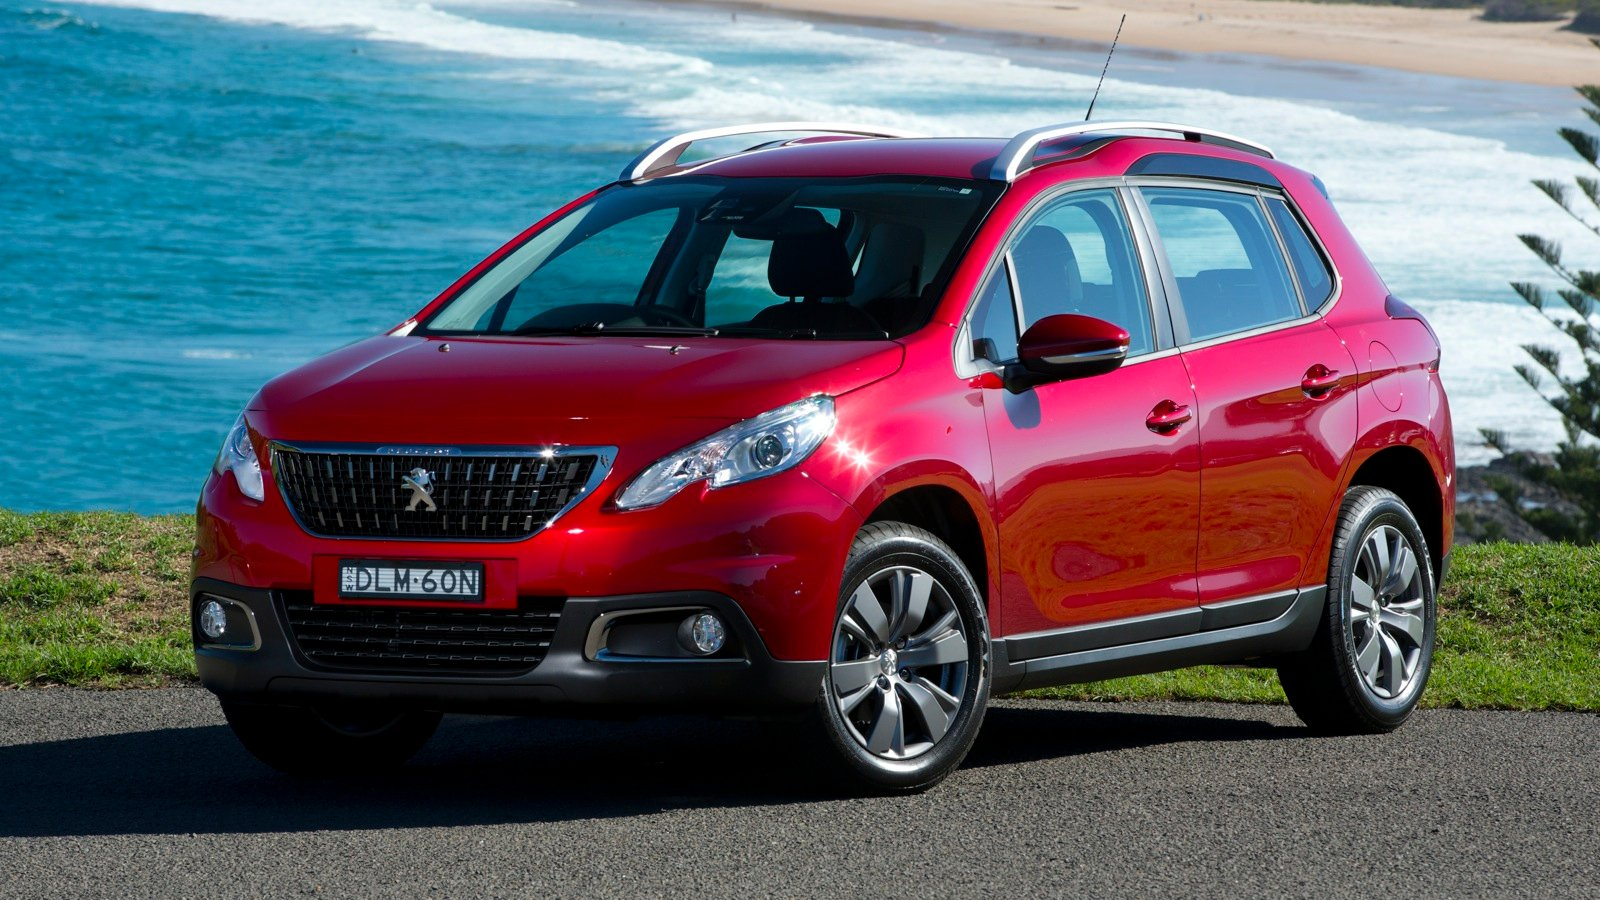 2017 Peugeot 2008 pricing and specs - Photos (1 of 40)